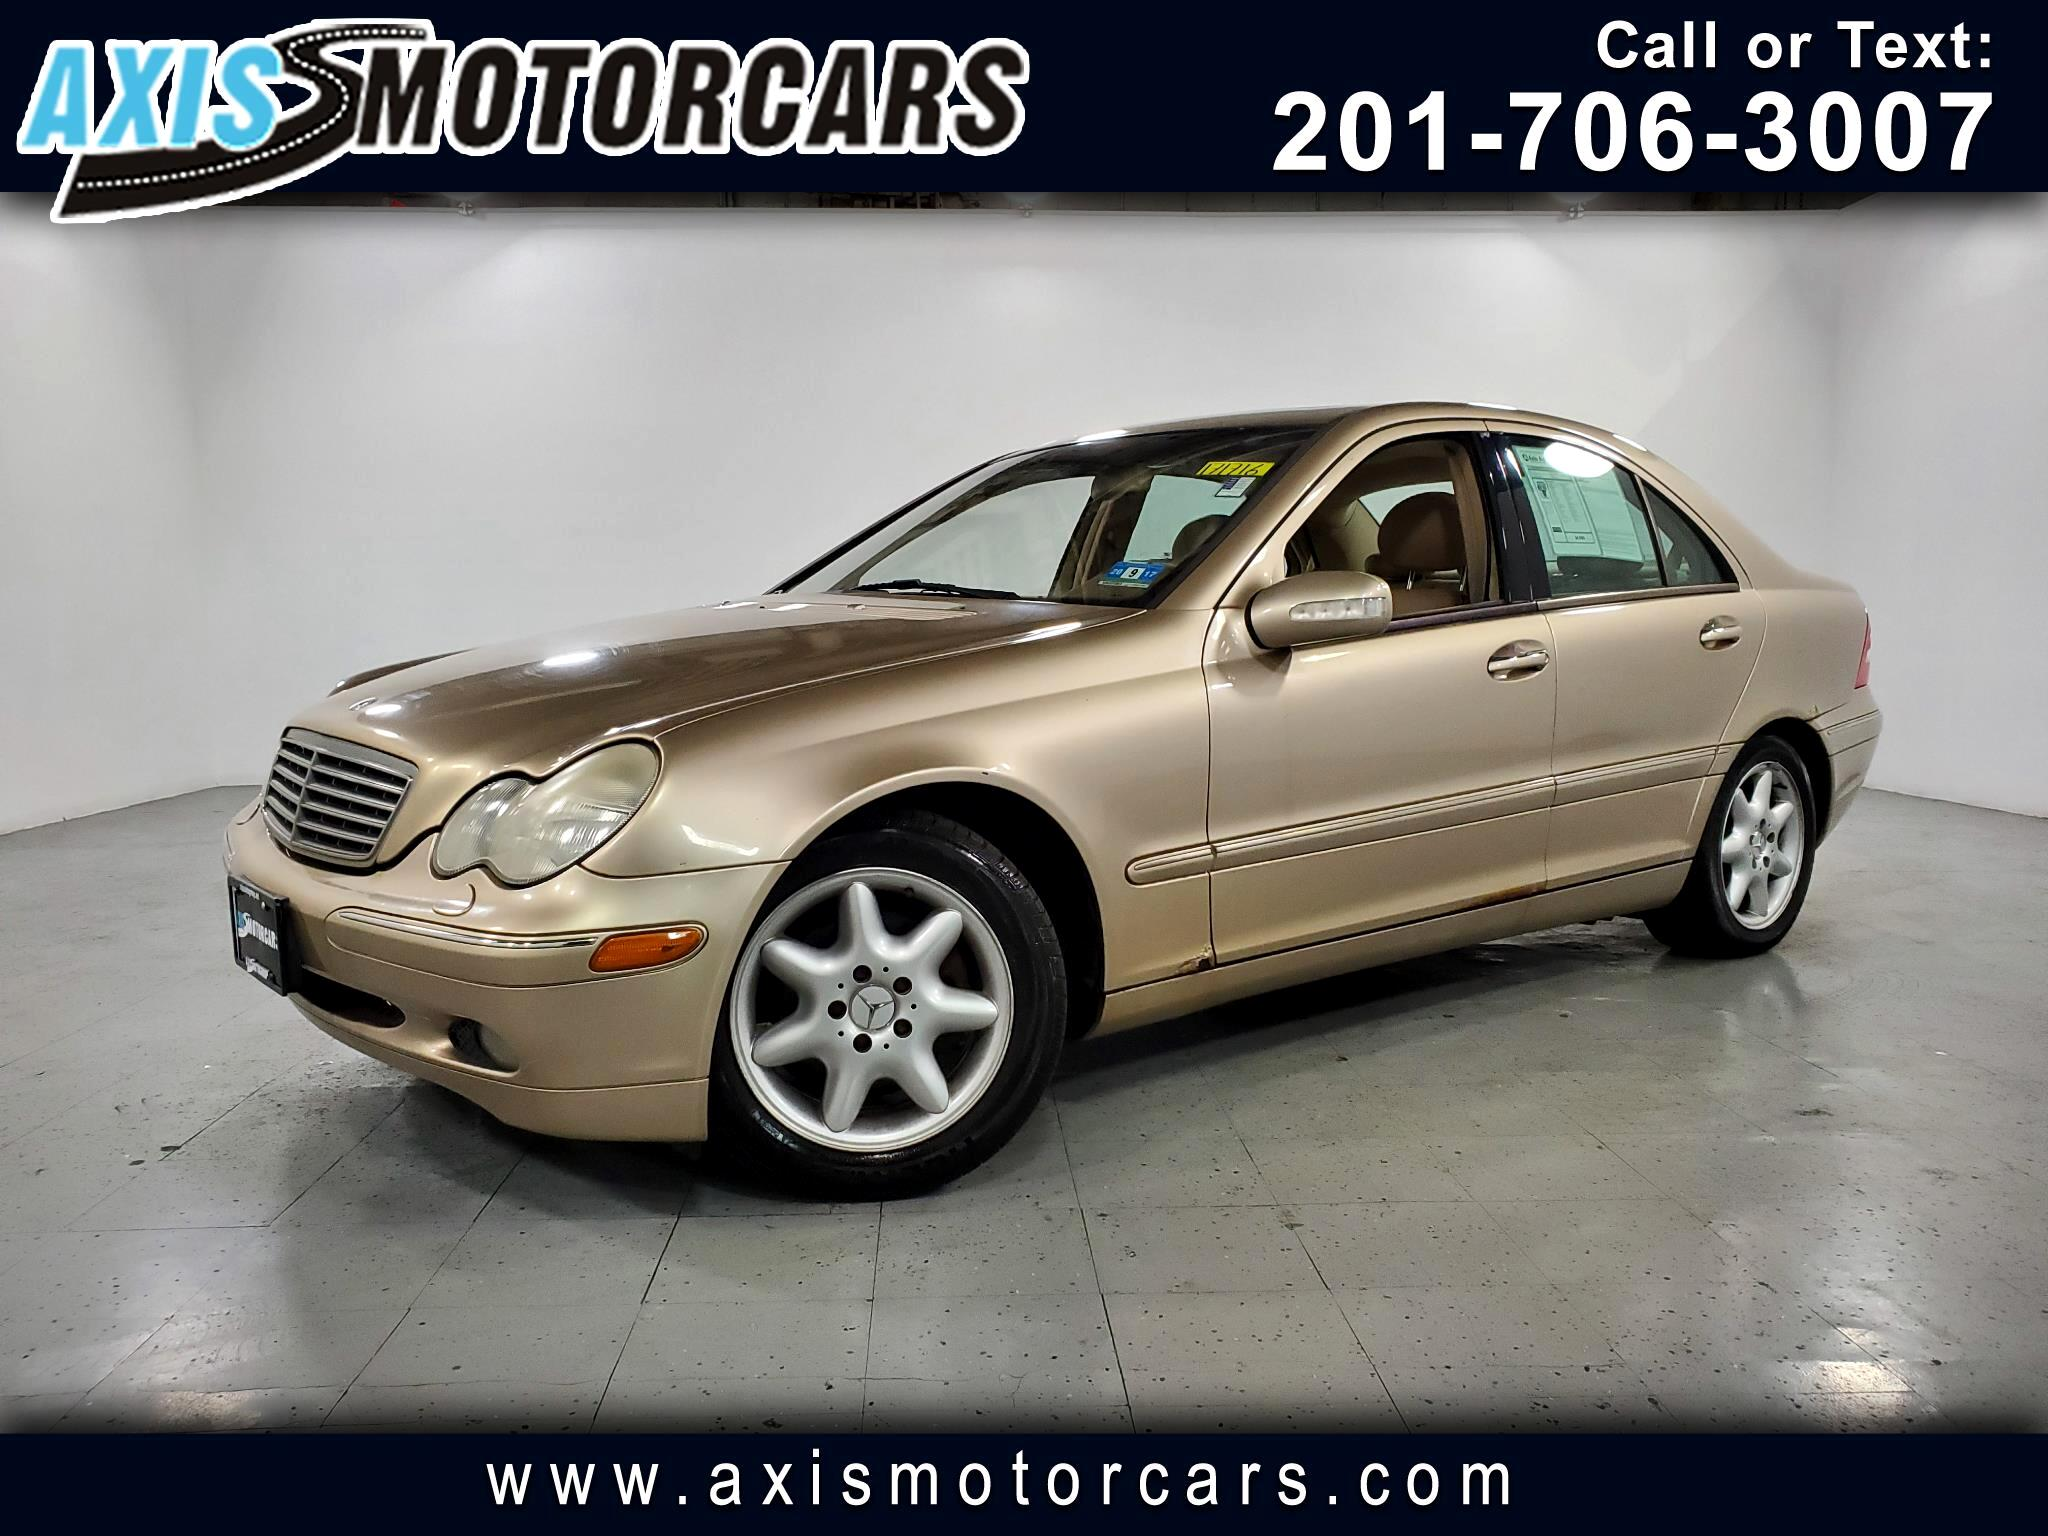 2002 Mercedes-Benz C-Class C240 w/Sunroof Leather